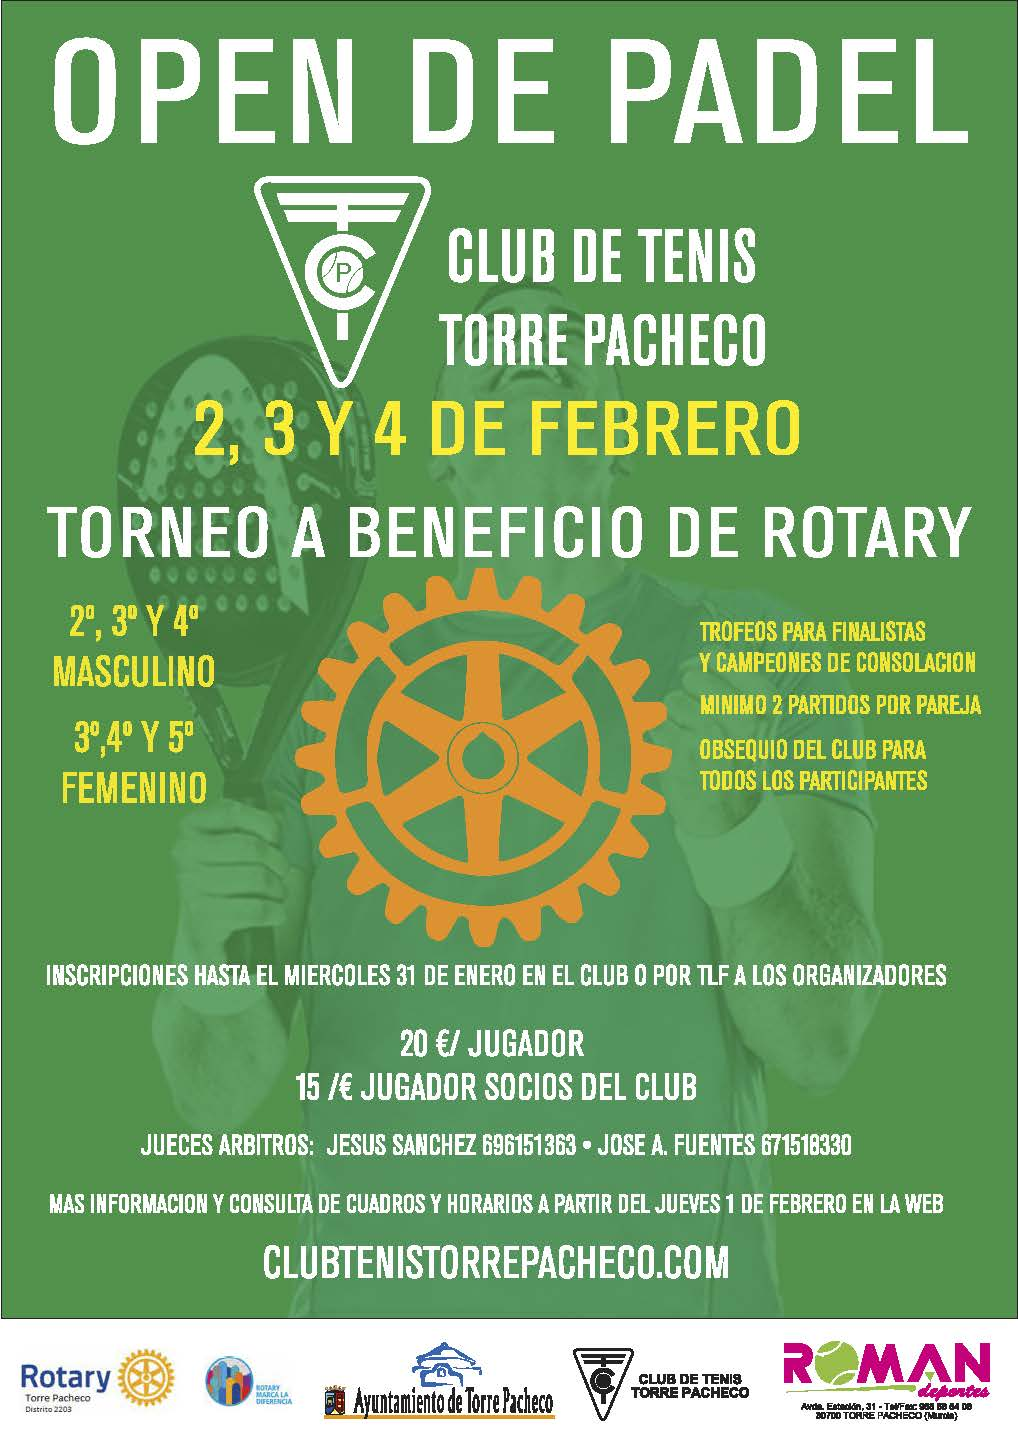 Padel torre pacheco